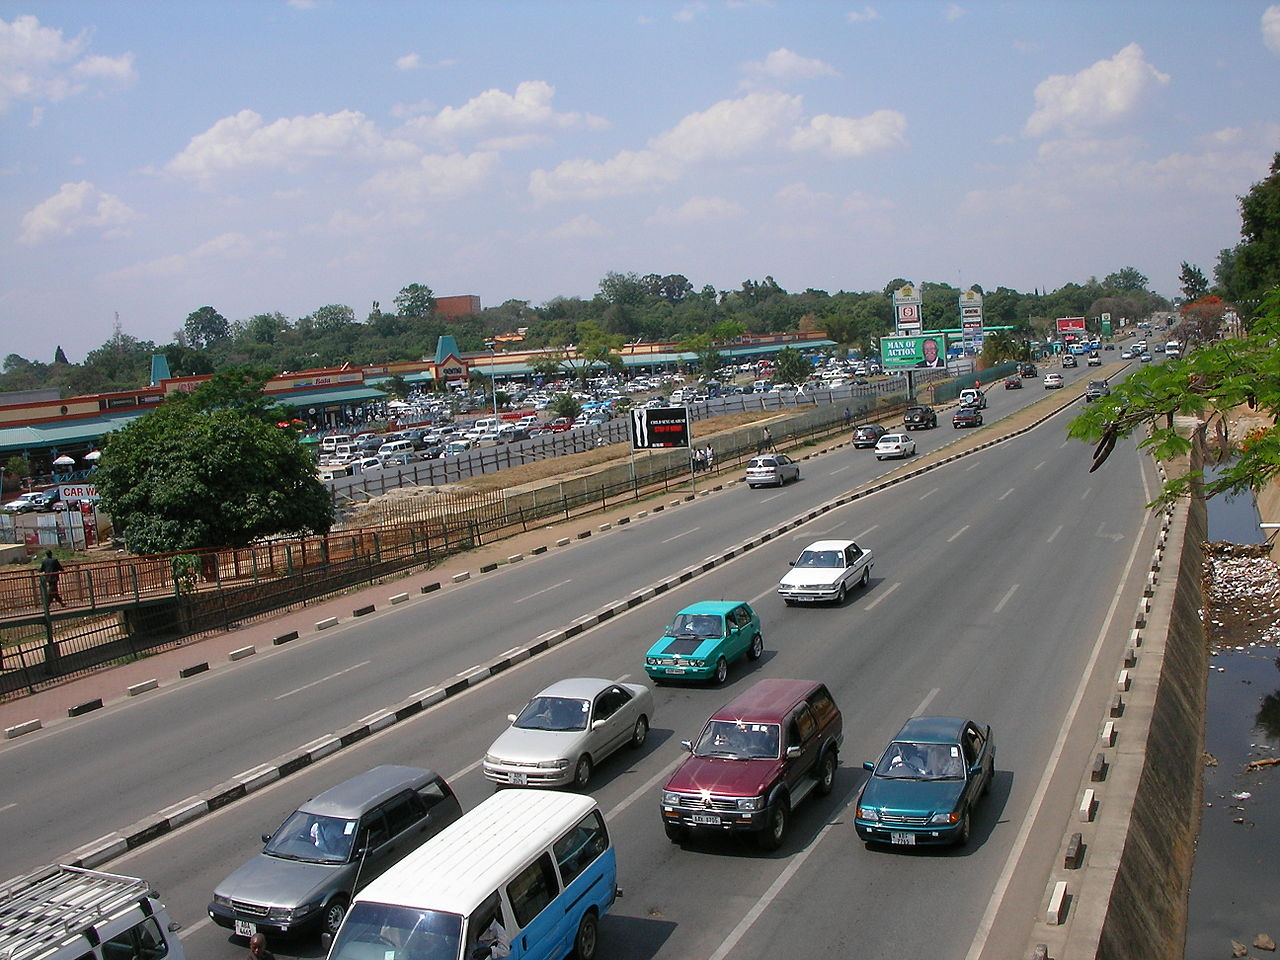 1280px-Lusaka_-_Manda_Hill_Shopping_Centre.JPG